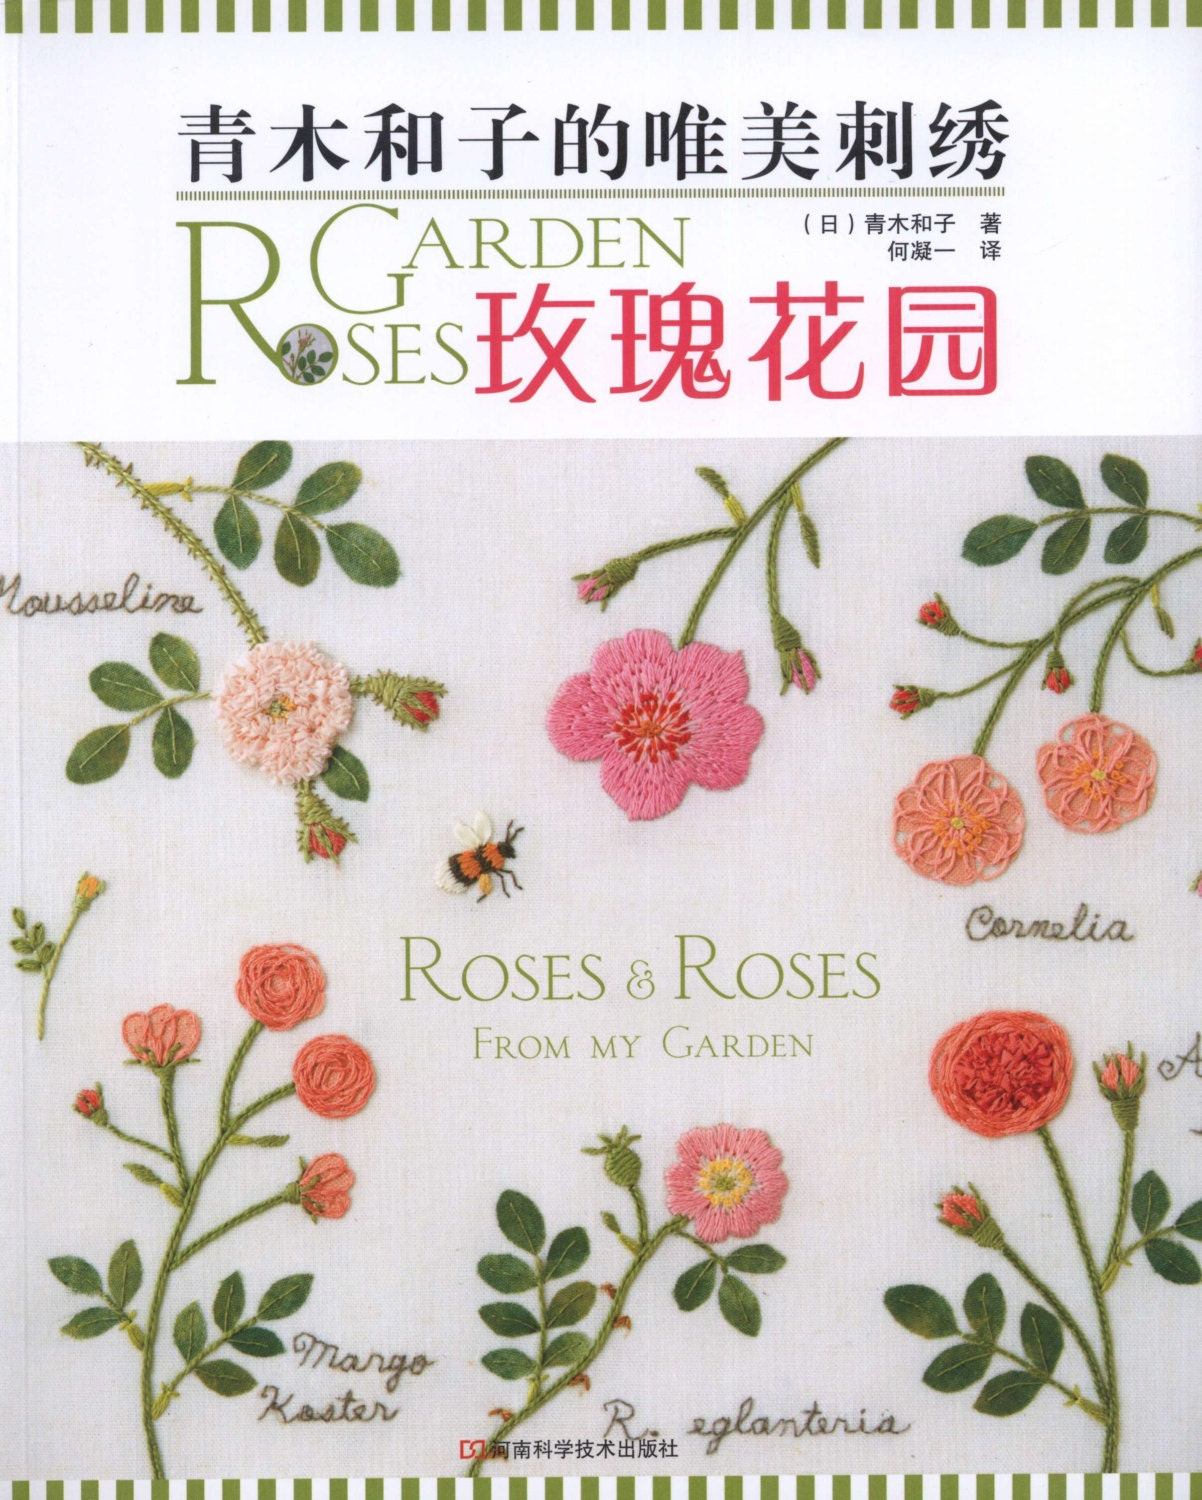 Kazuko Aoki  Rose Embroidery  Embroidery Pattern  Botanical  Japanese  Embroidery Book  Ebook  Pdf  Instant Download